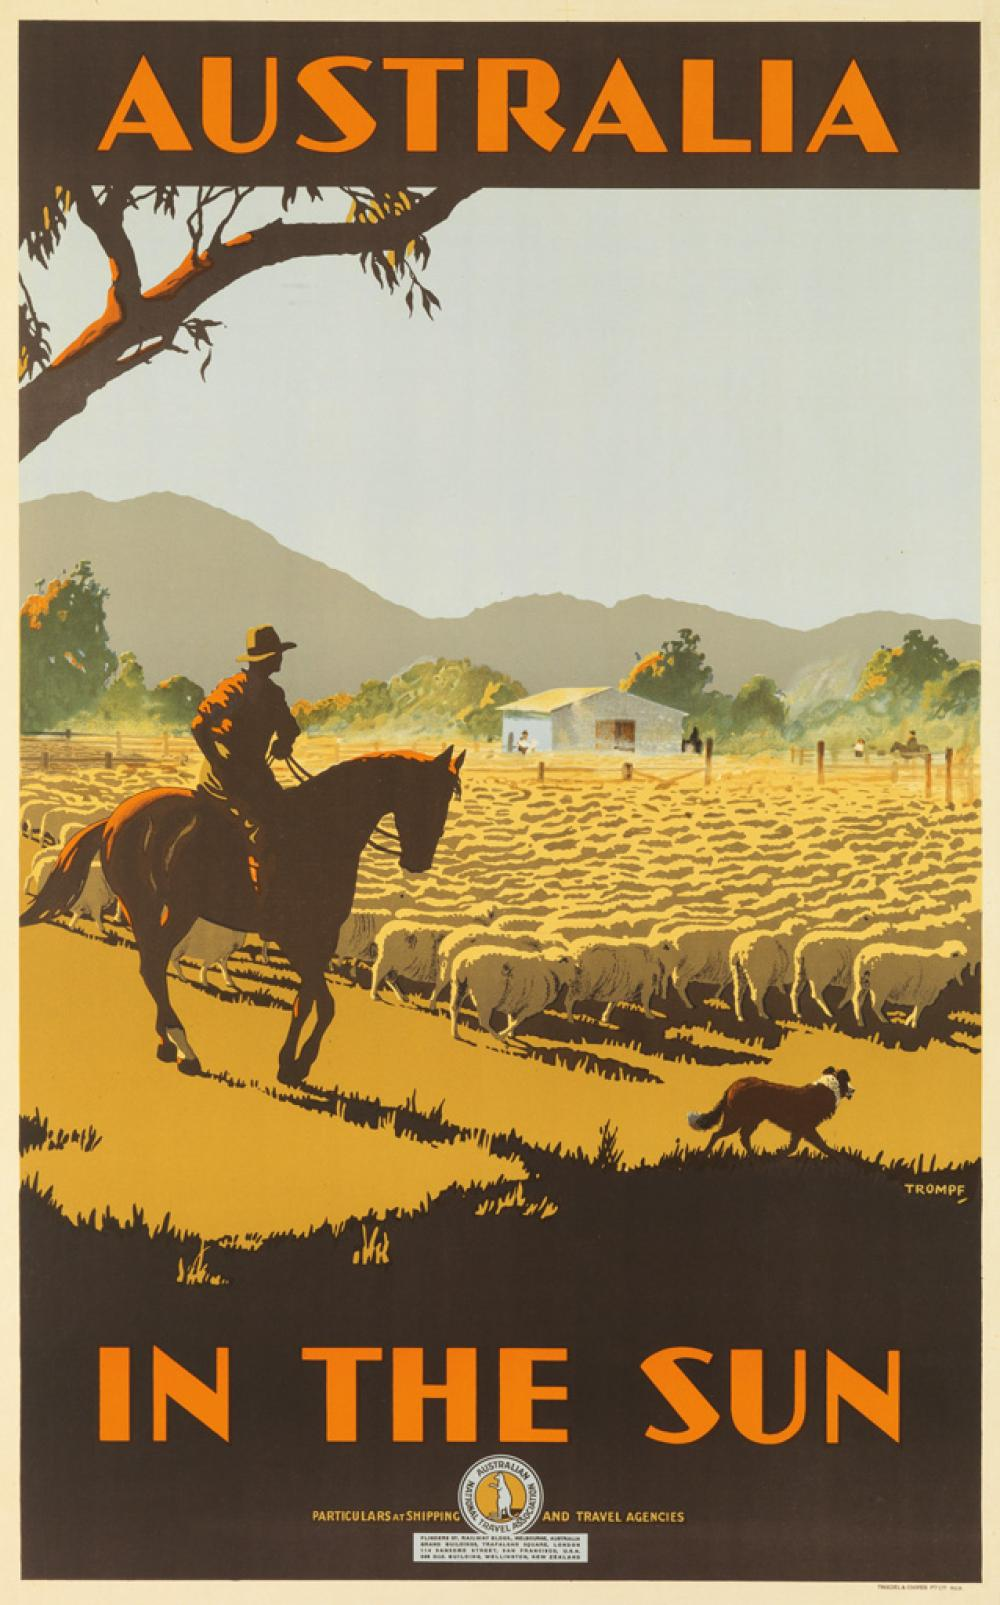 PERCIVAL ALBERT (PERCY) TROMPF (1902-1964). AUSTRALIA IN THE SUN. Circa 1935. 39x25 inches, 101x63 cm. Troedel & Cooper Pty. Ltd., Melb